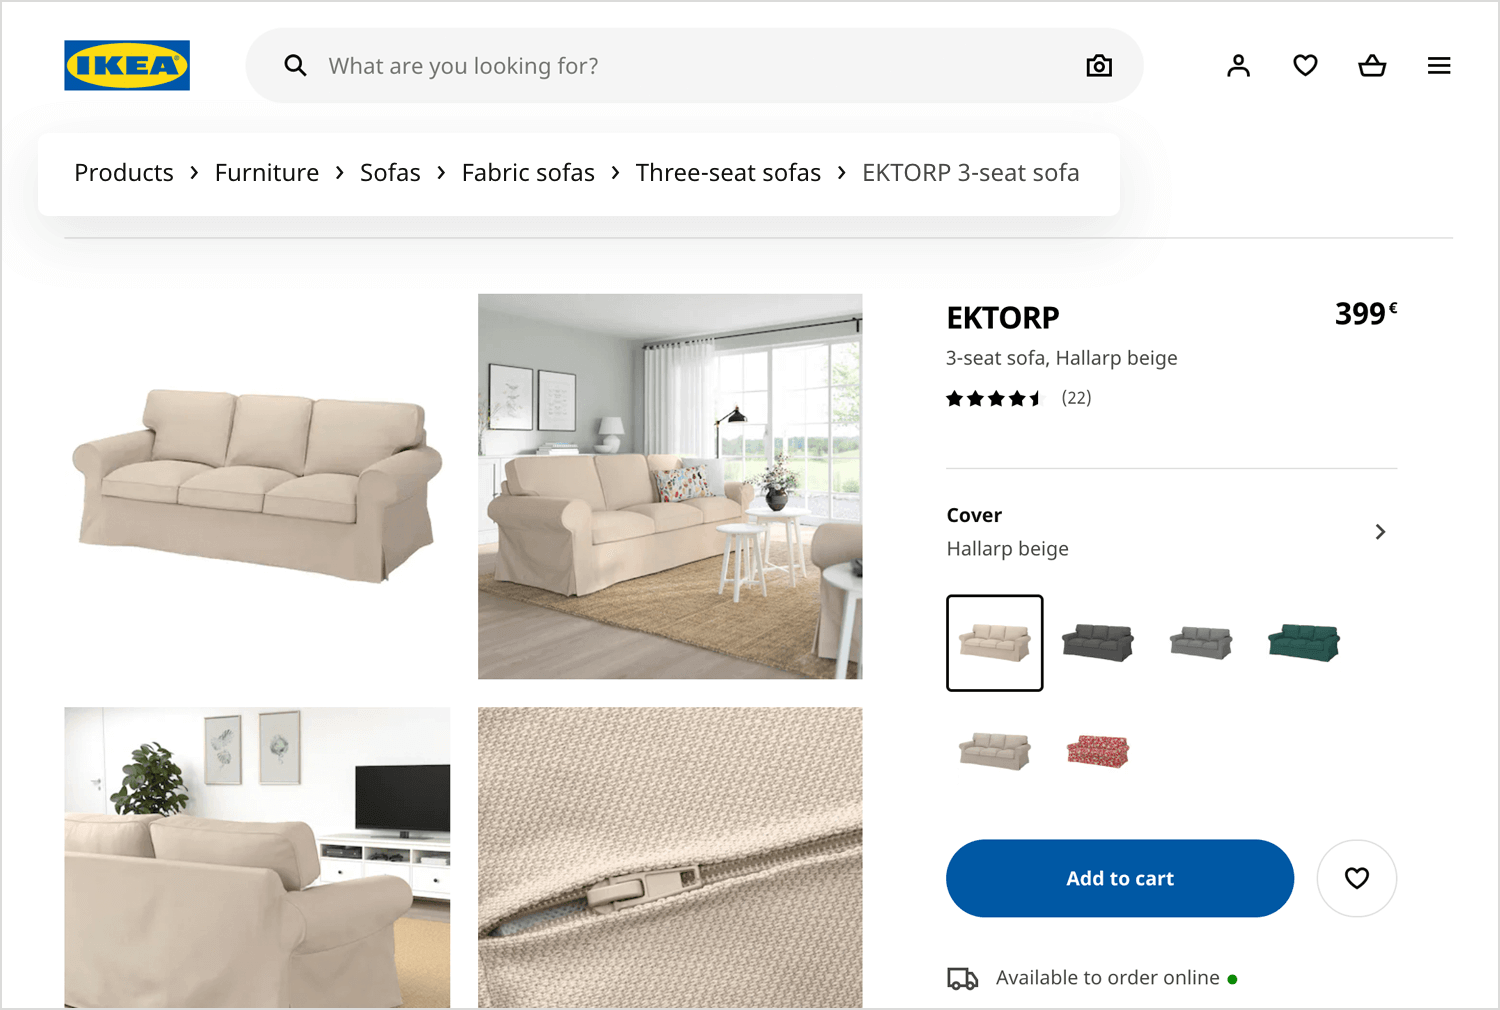 ikea website using breadcrumbs for navigation